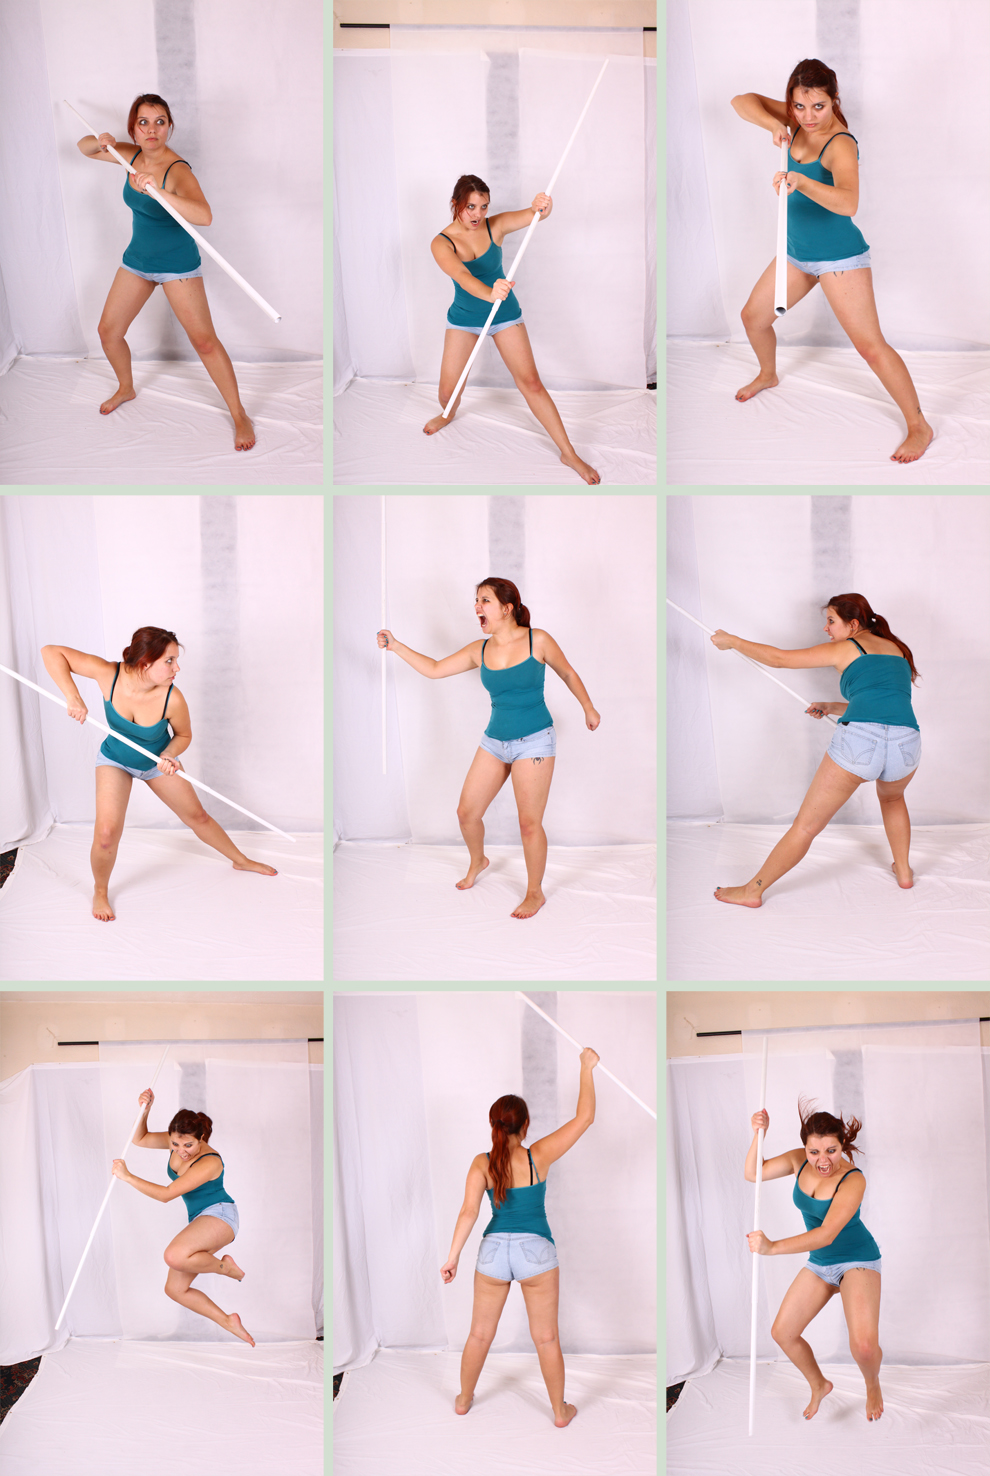 Dynamic poses reference model